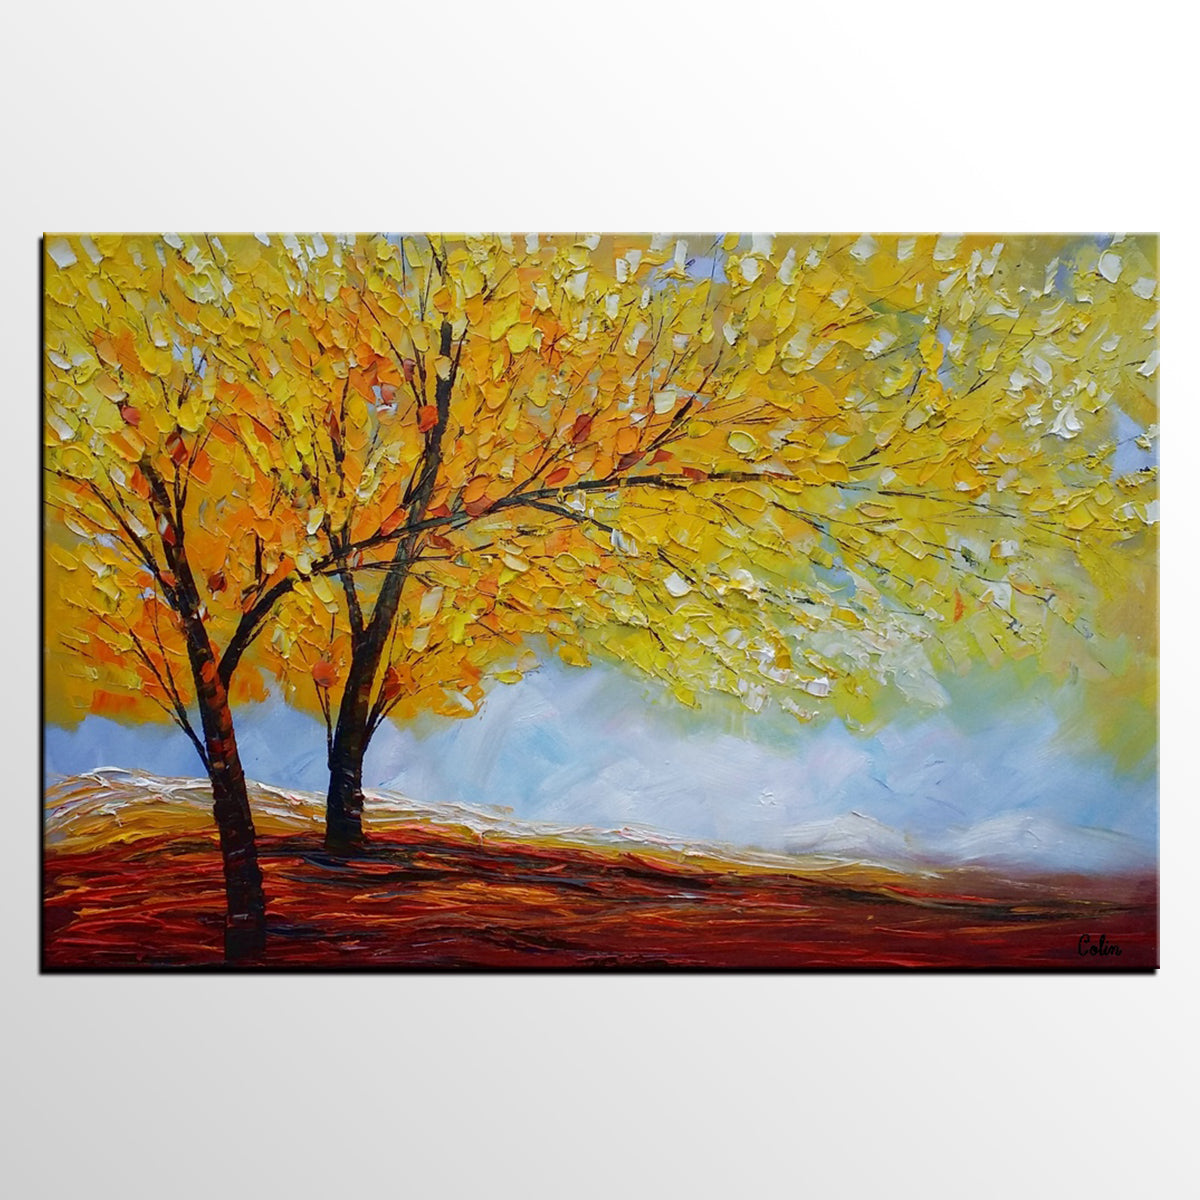 Original Painting, Art Painting, Autumn Tree Painting, Landscape Painting, Wall Art, Oil Painting, Canvas Wall Art, Abstract Art, Large Art